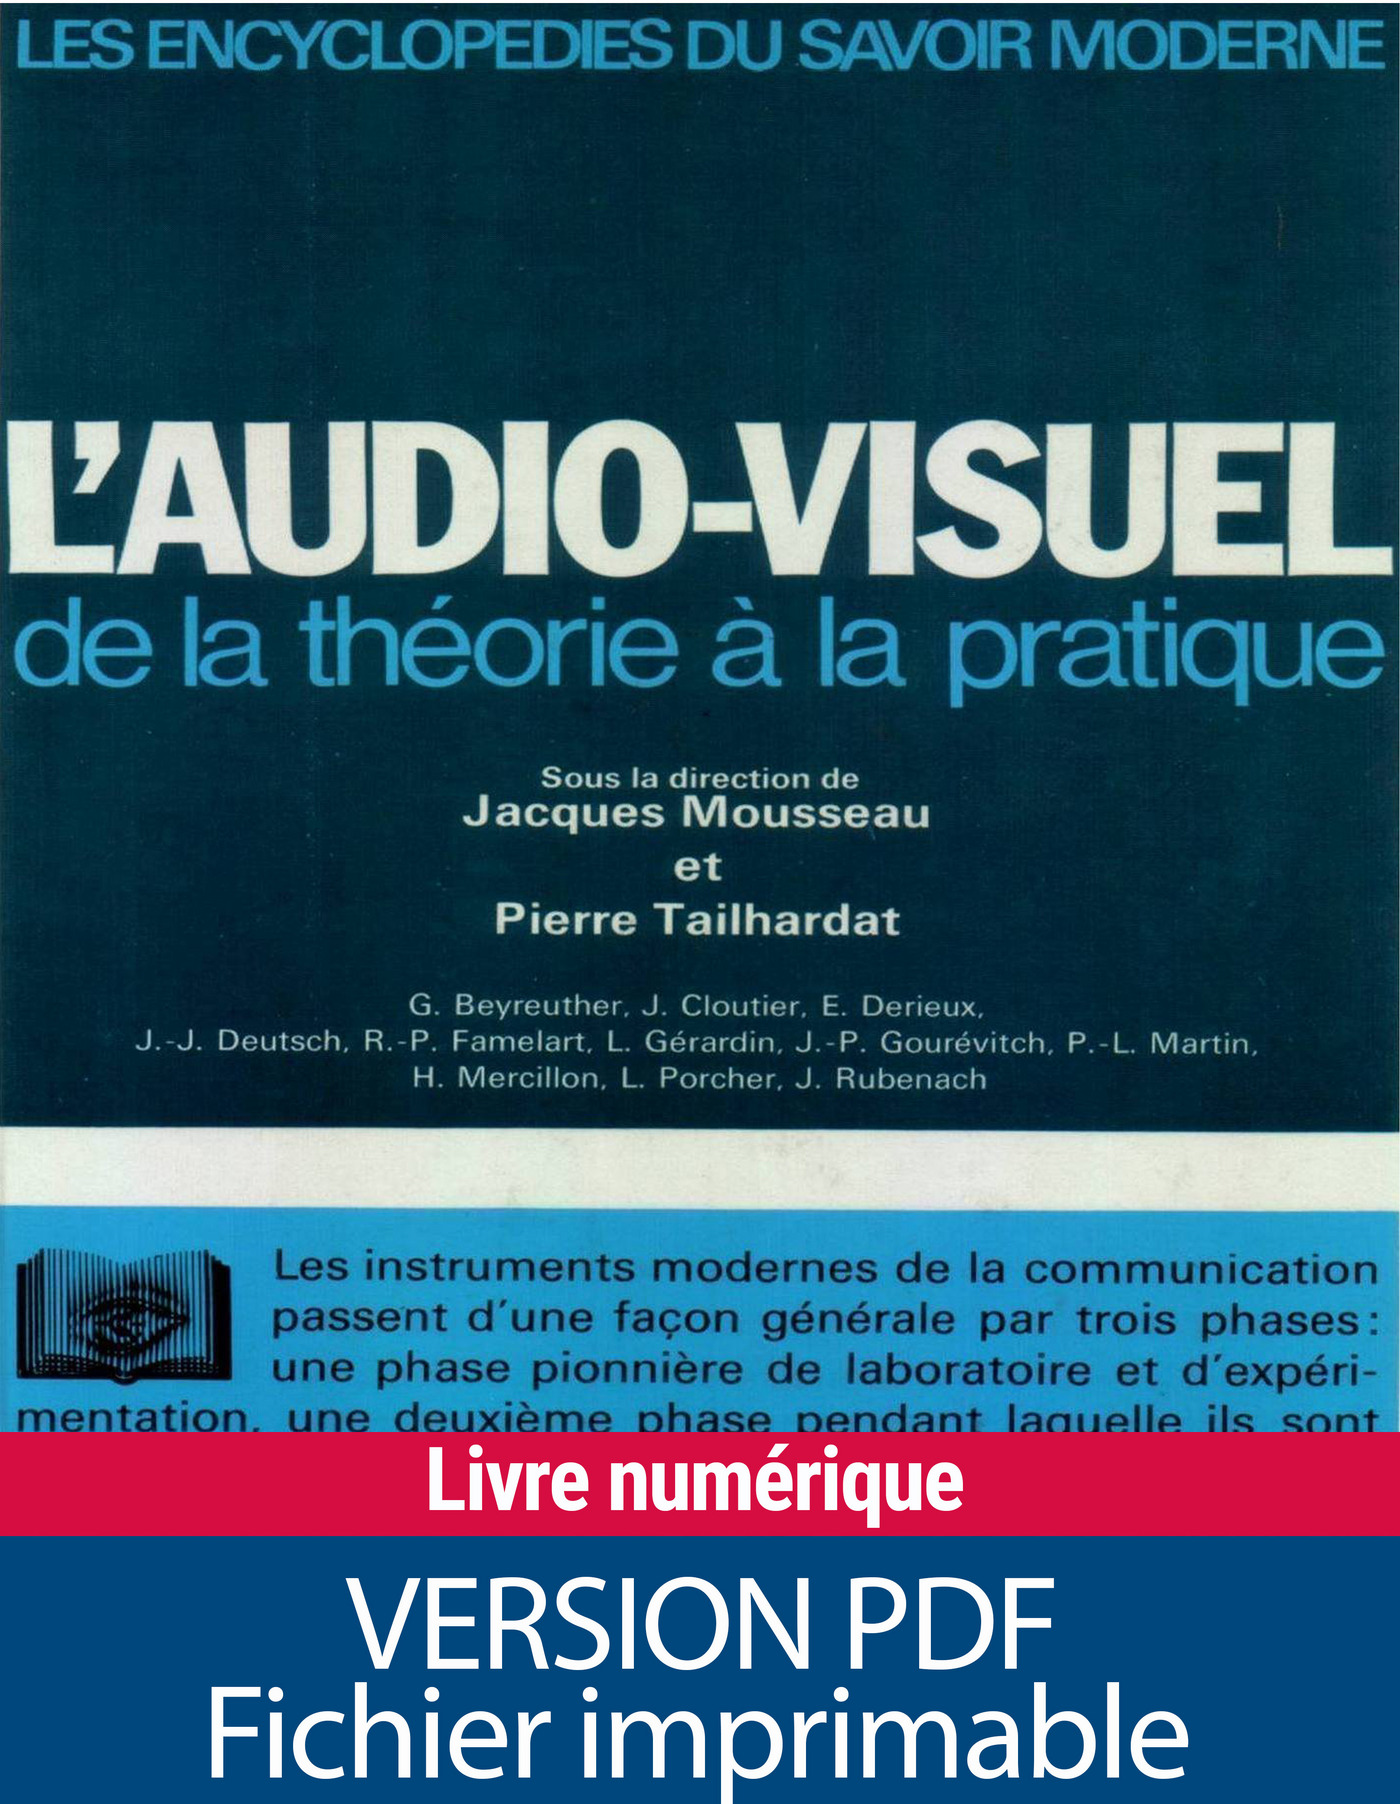 L'audio-visuel